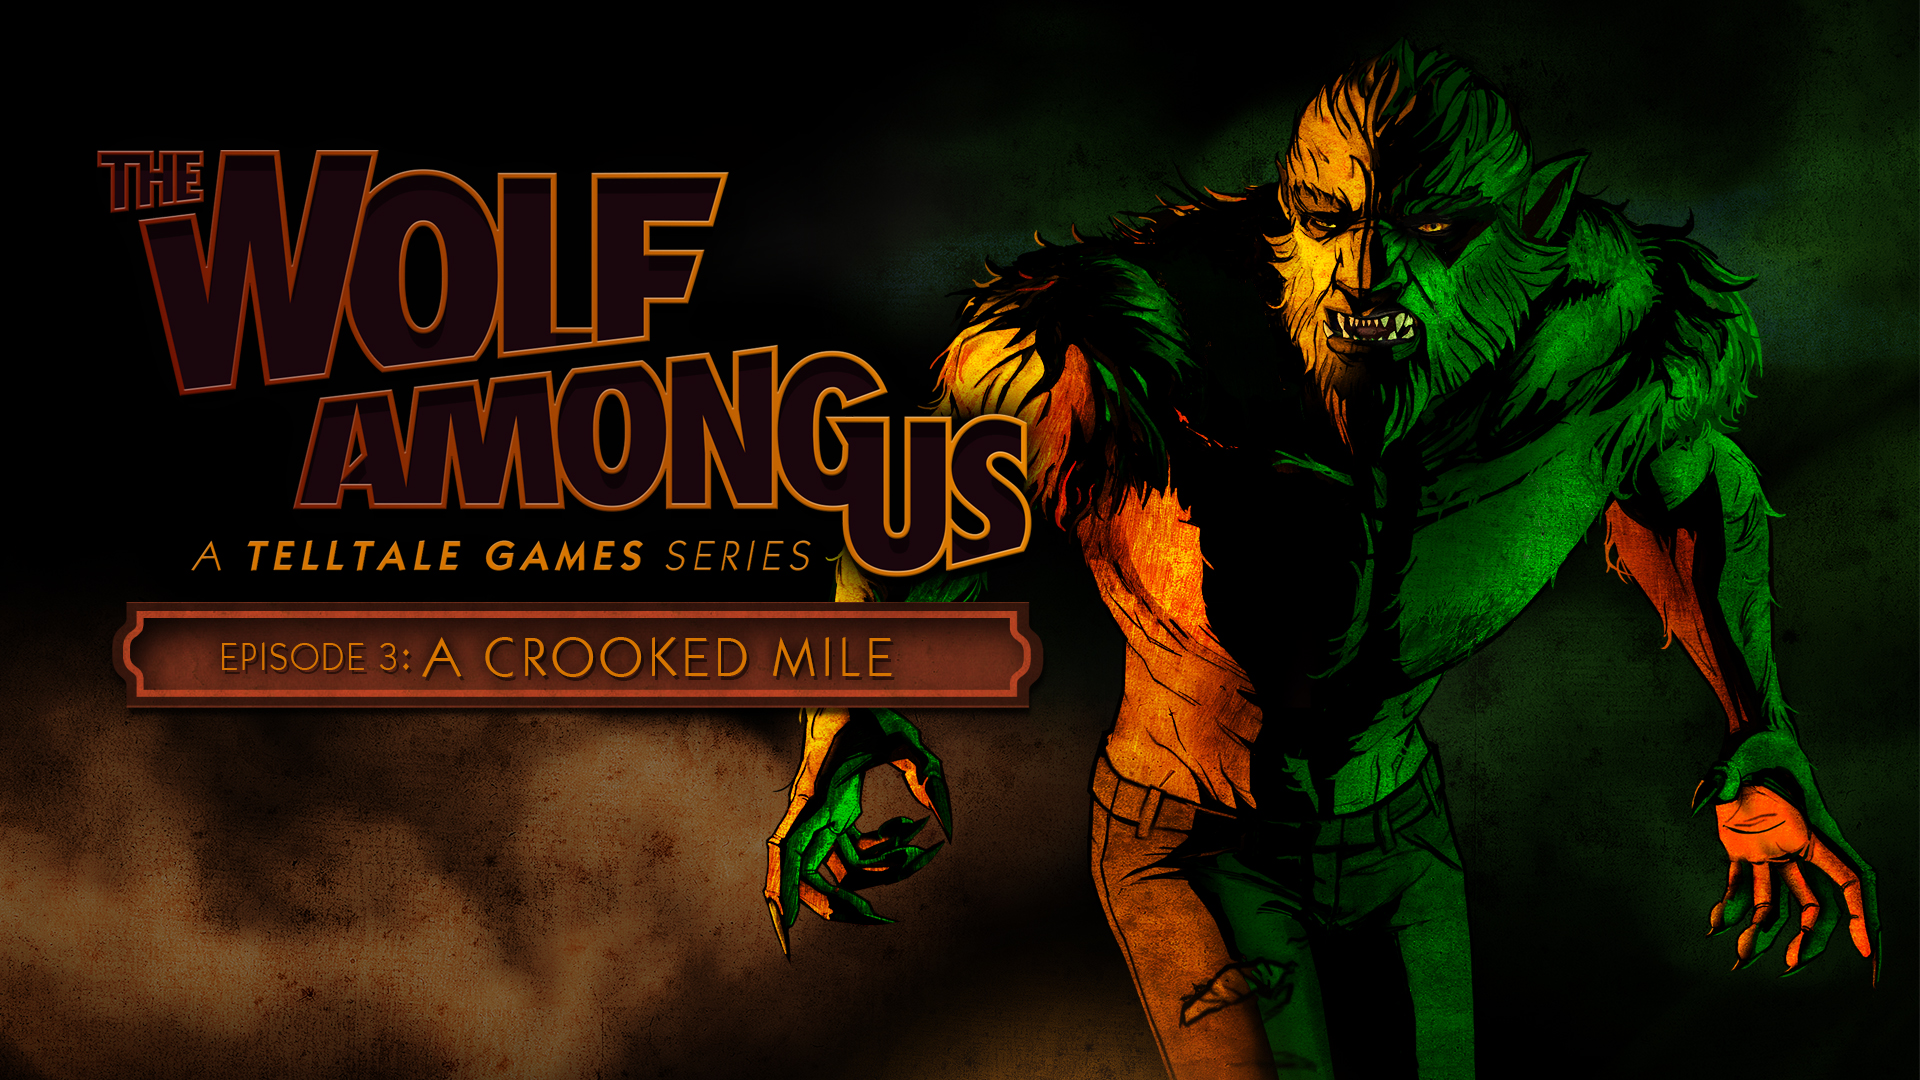 Арт к игре The Wolf Among Us - Episode 3: A Crooked Mile